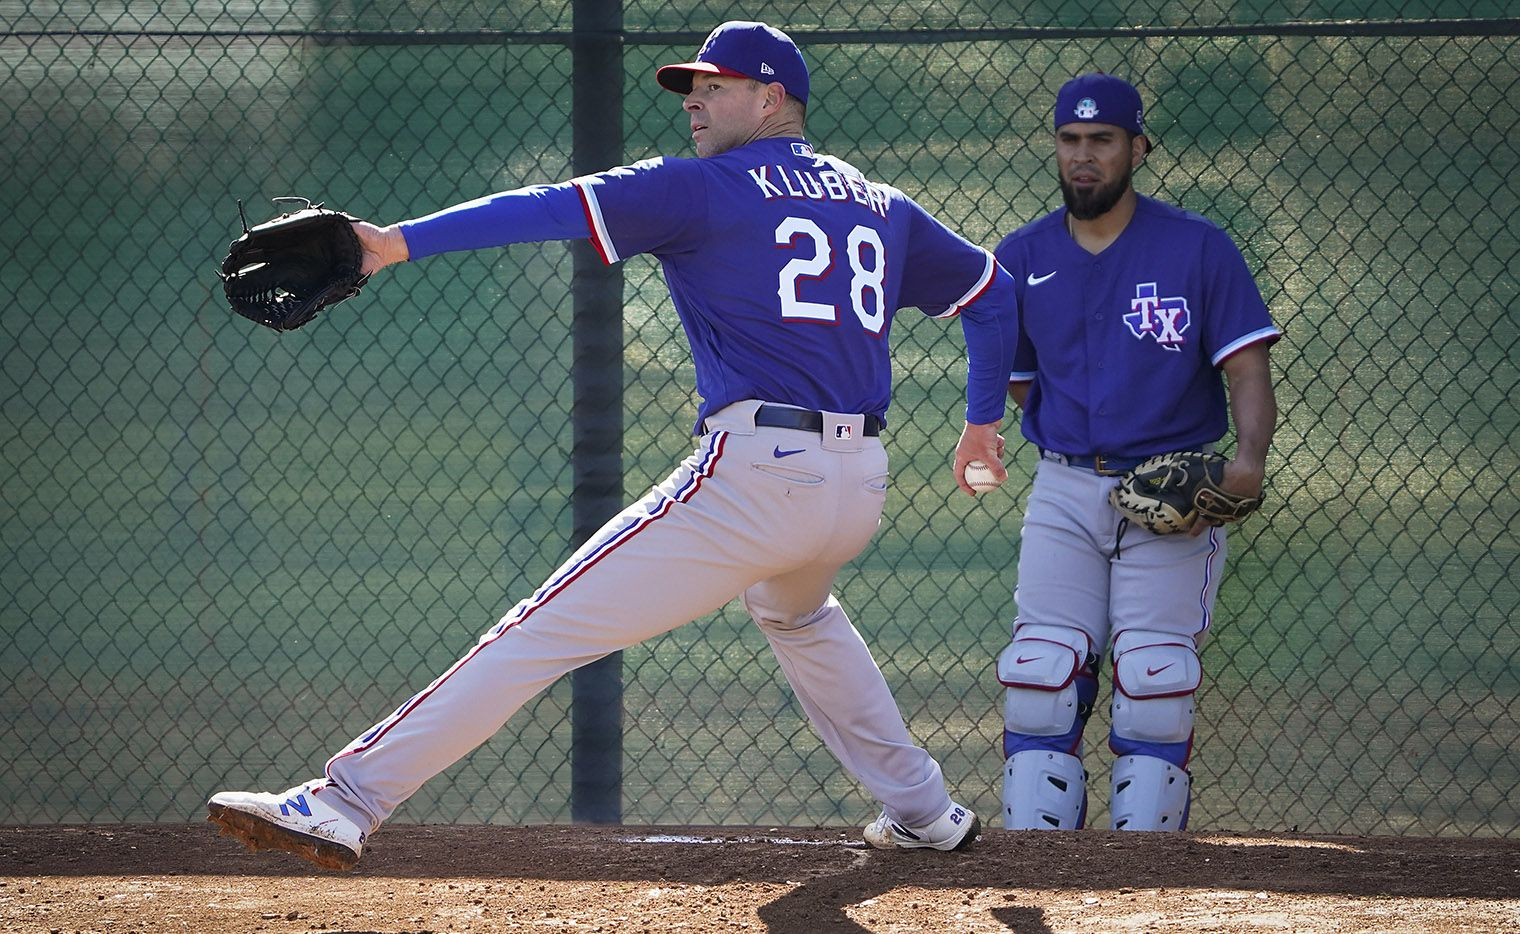 Texas Rangers pitcher Corey Kluber throws in the bullpen as catcher Robinson Chirinos looks on during the first spring training workout for pitchers and catchers at the team's training facility on Wednesday, Feb. 12, 2020, in Surprise, Ariz